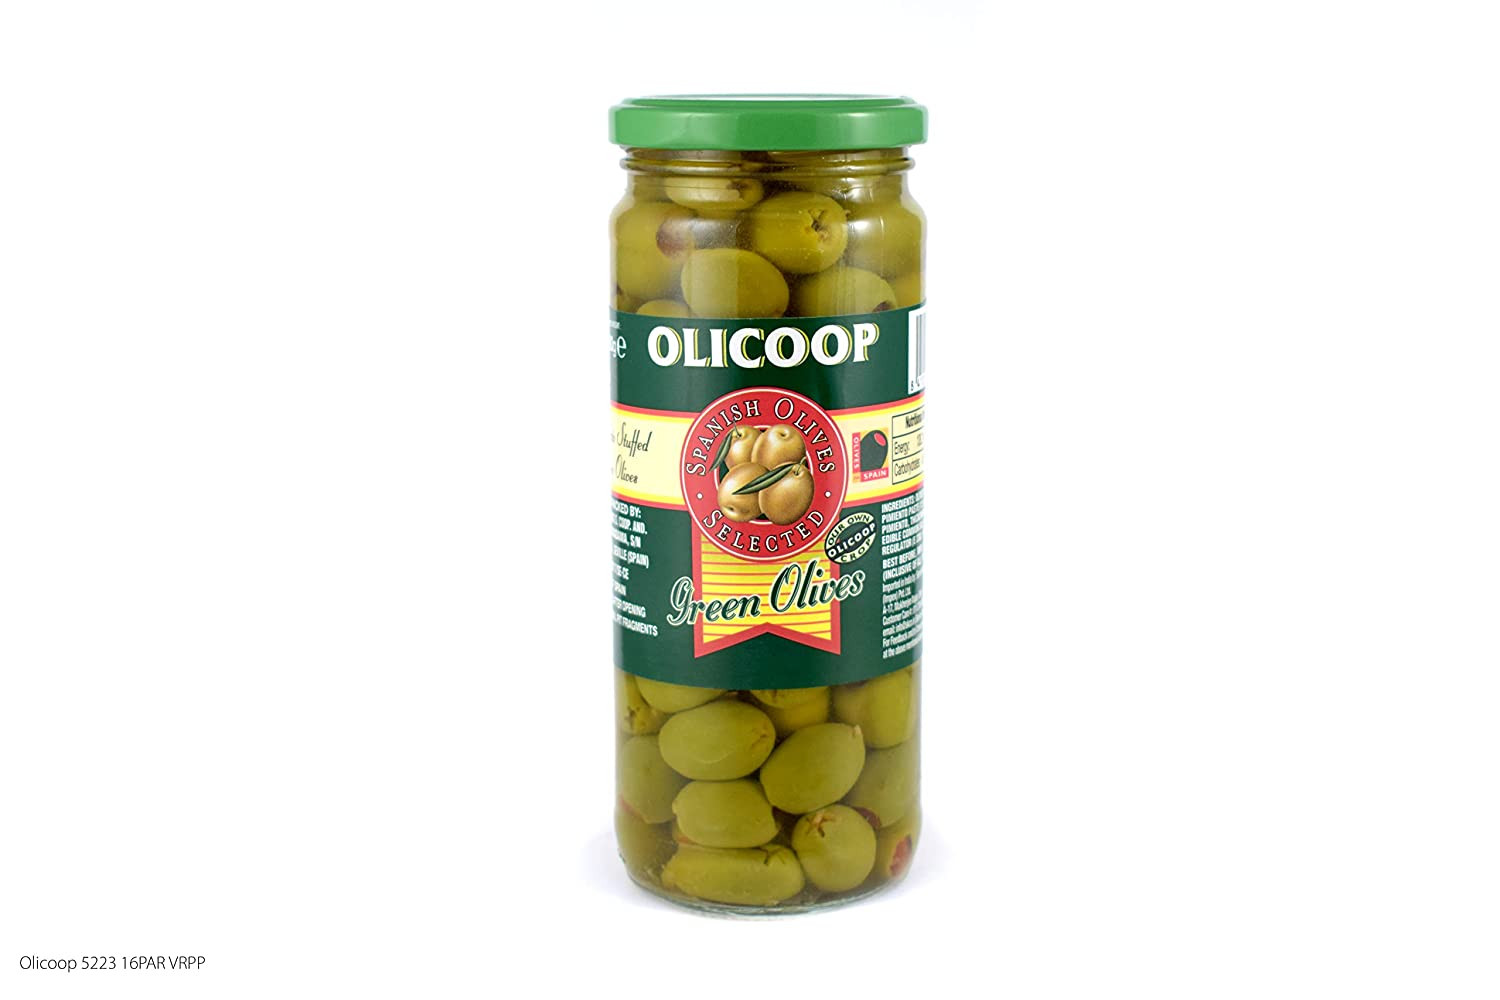 Olicoop Green Whole Olives 450G